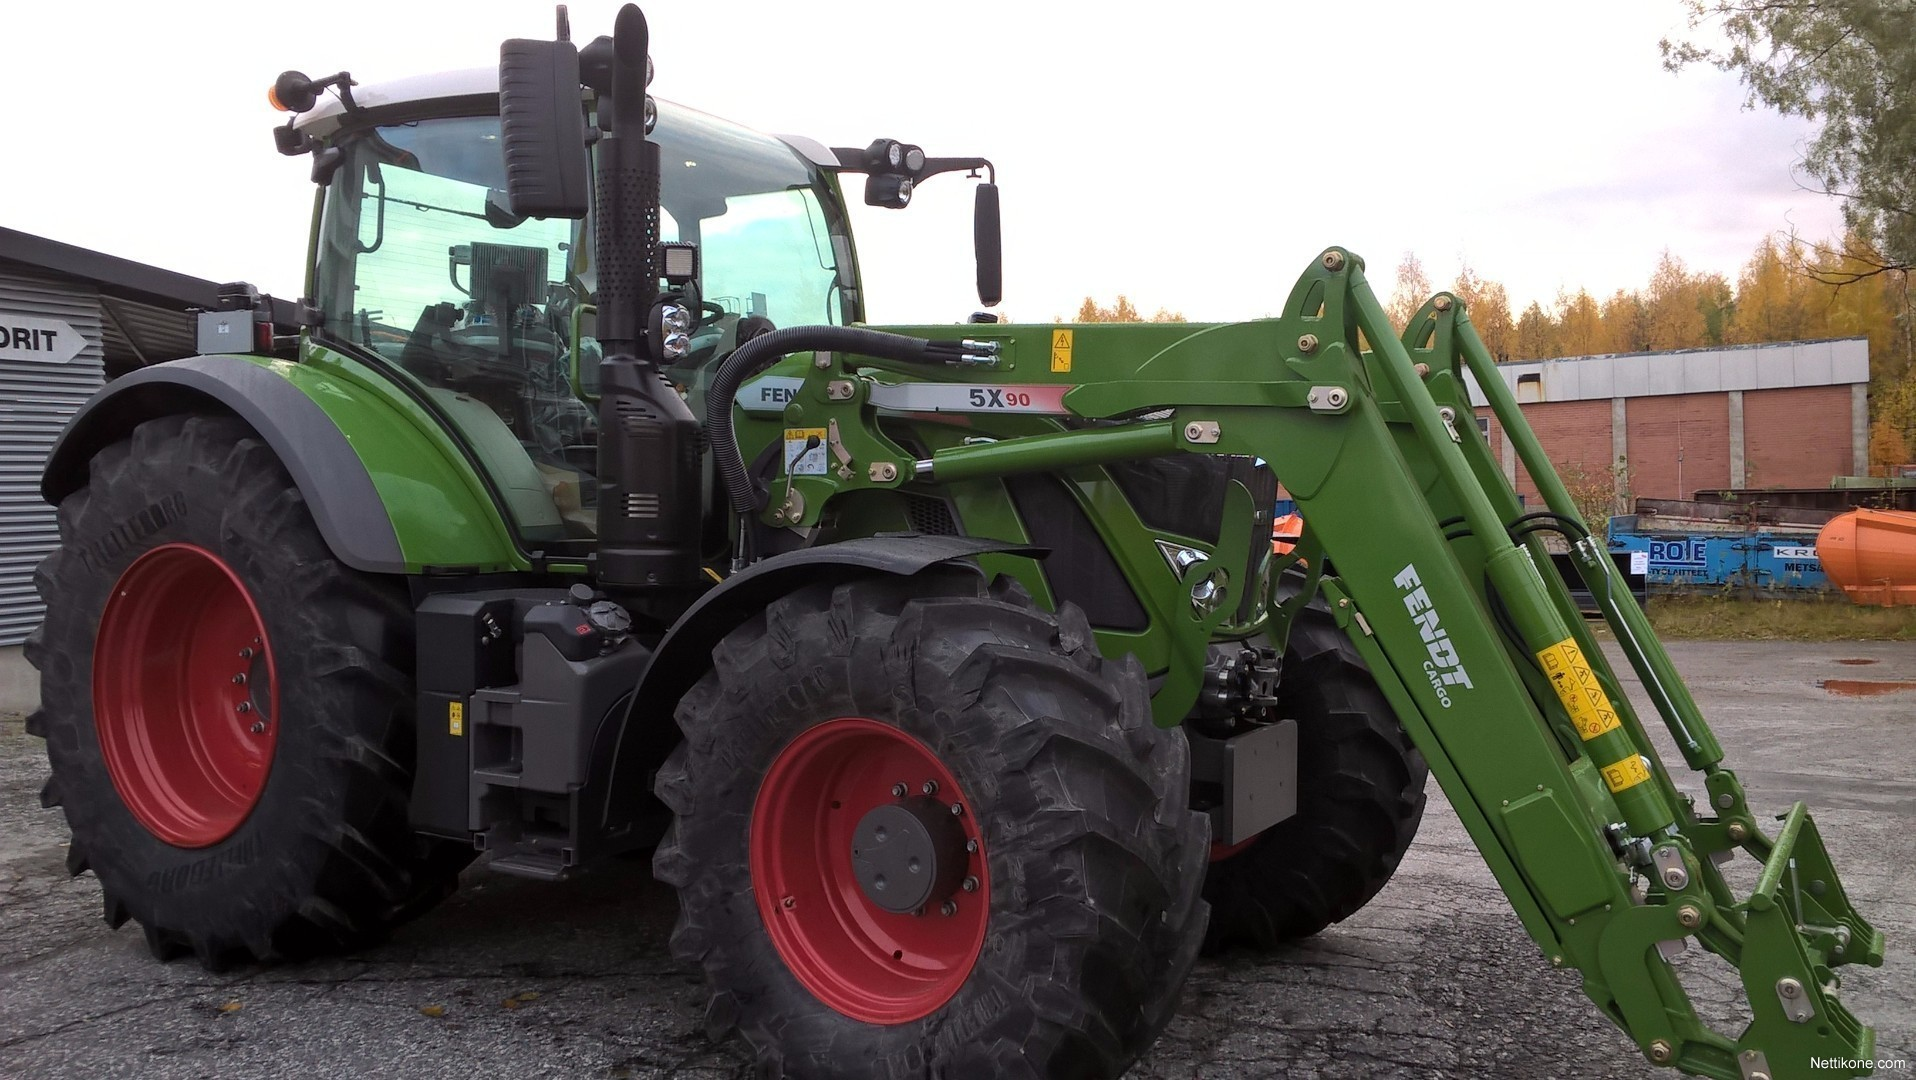 Transmission For Sale >> Fendt 724 vario tractors - Nettikone